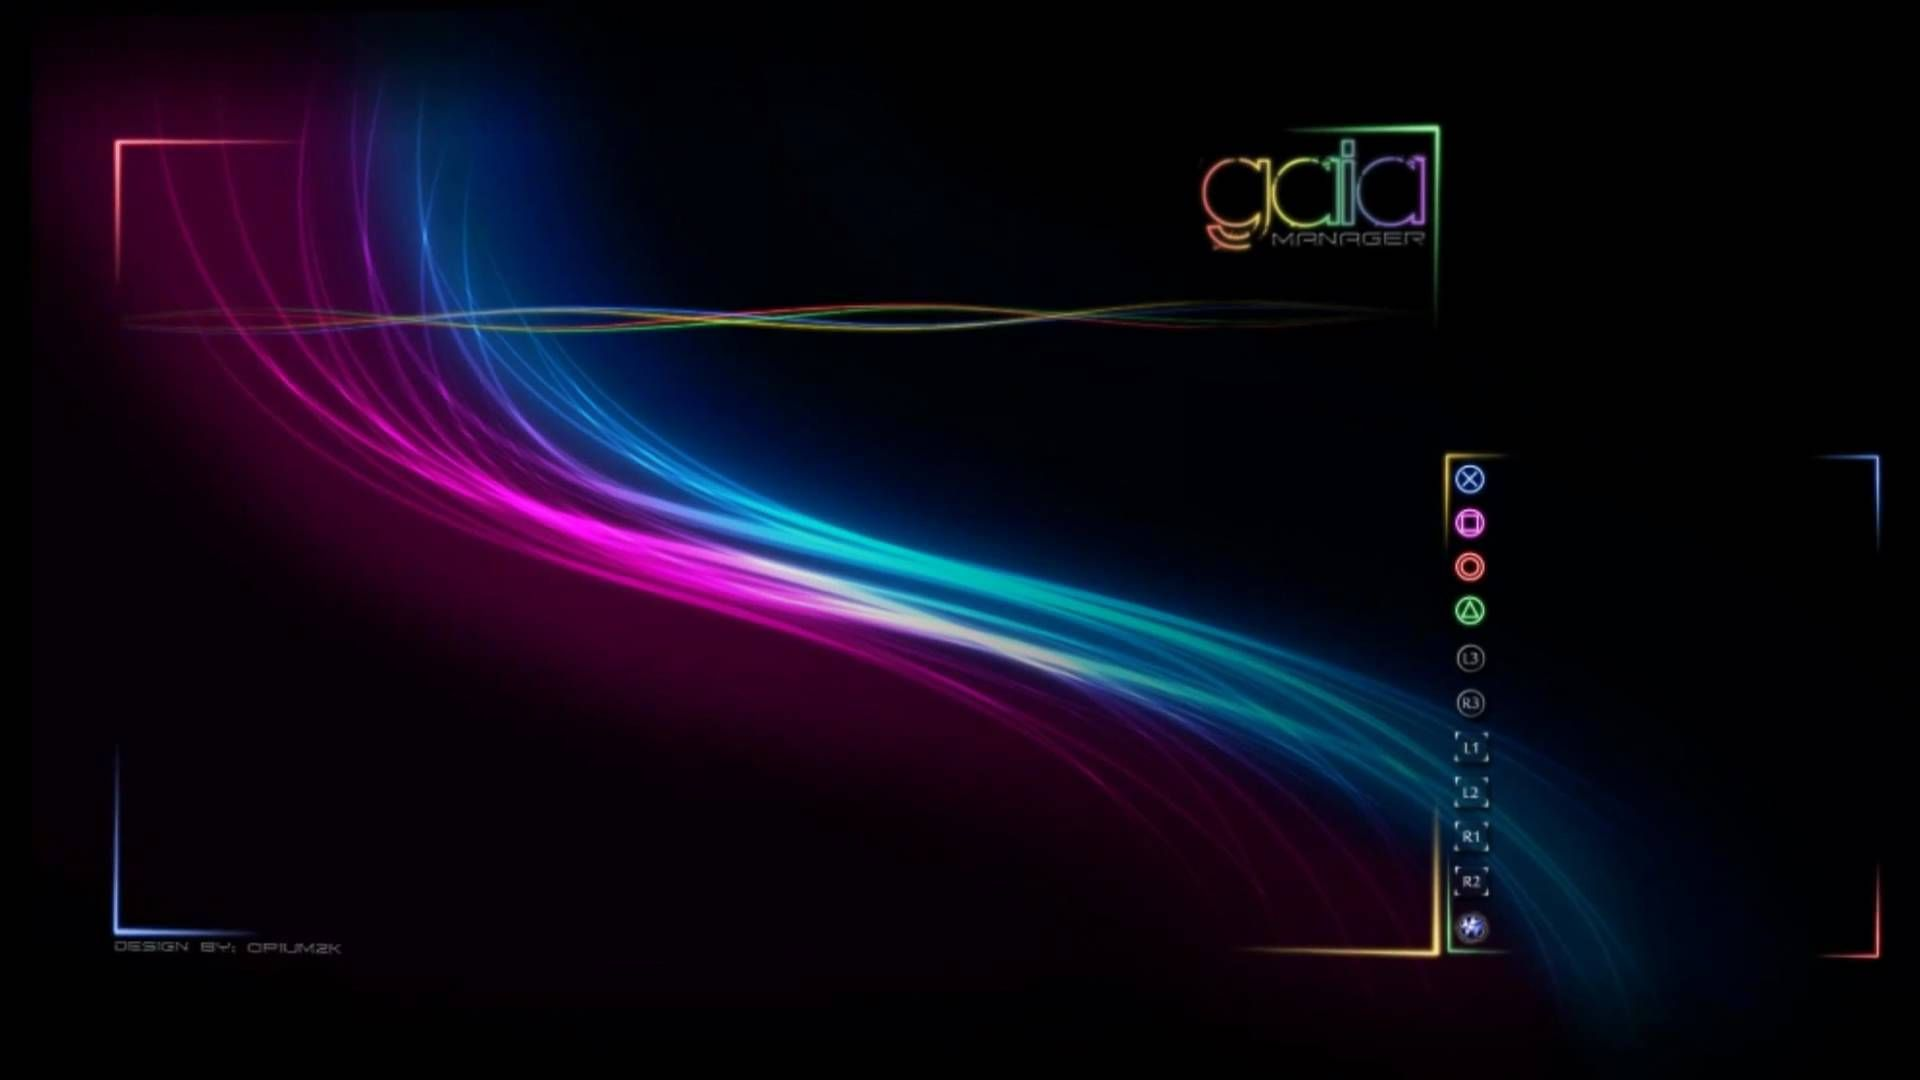 Ps3 Gaia Manager Themes Background Wallpaper Luminous